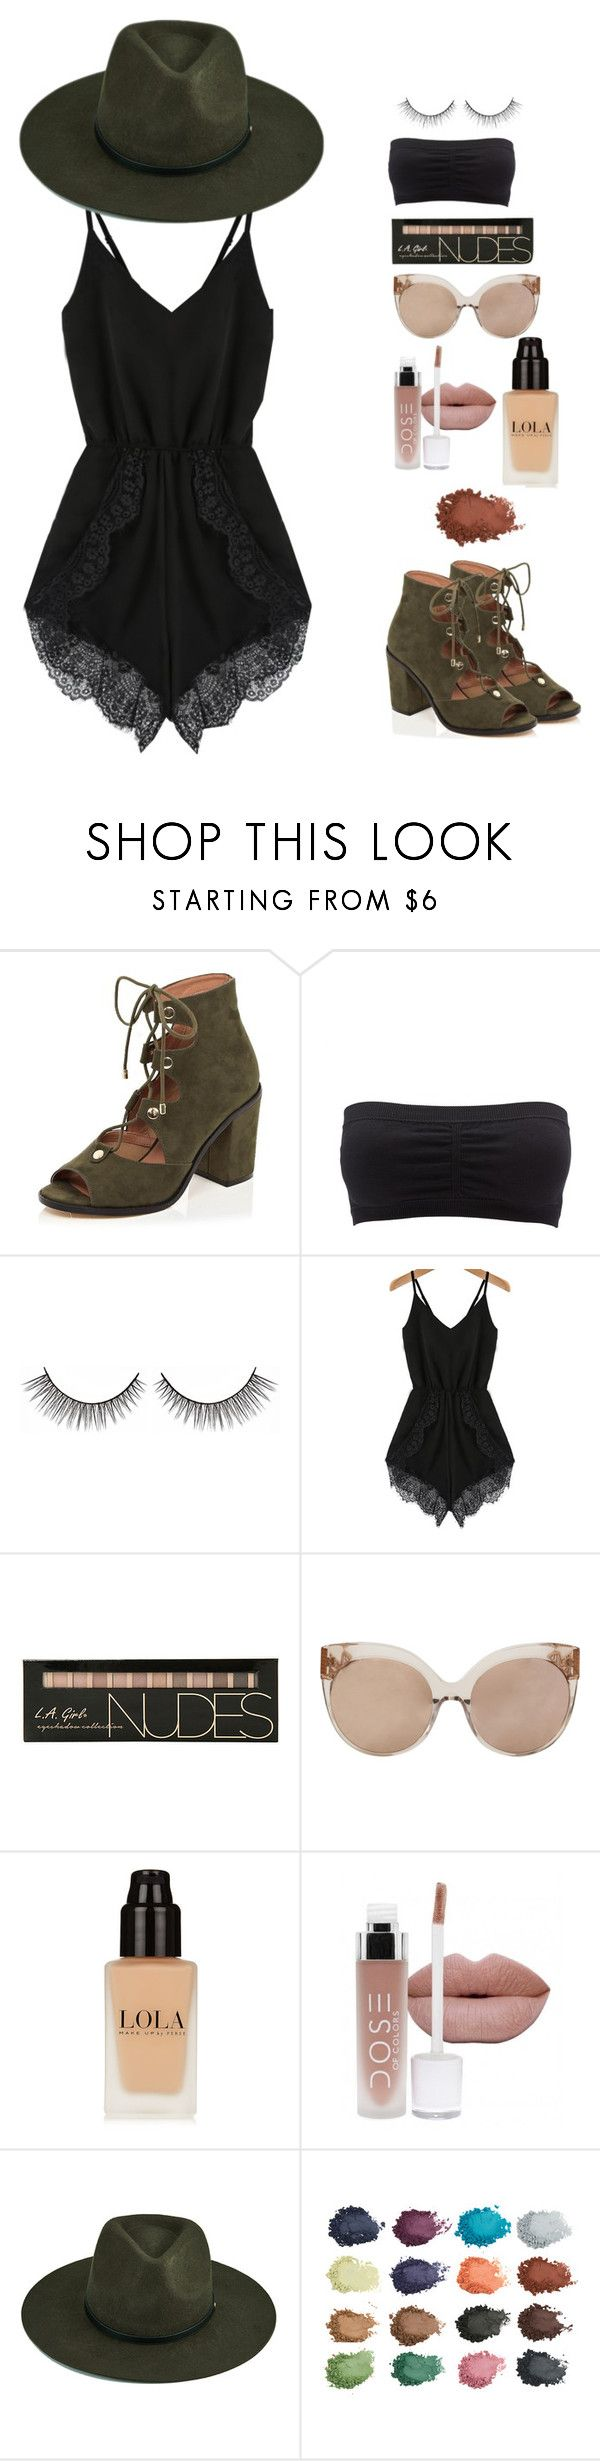 """cochella"" by pandadonuttwin ❤ liked on Polyvore featuring River Island, Charlotte Russe and Linda Farrow"